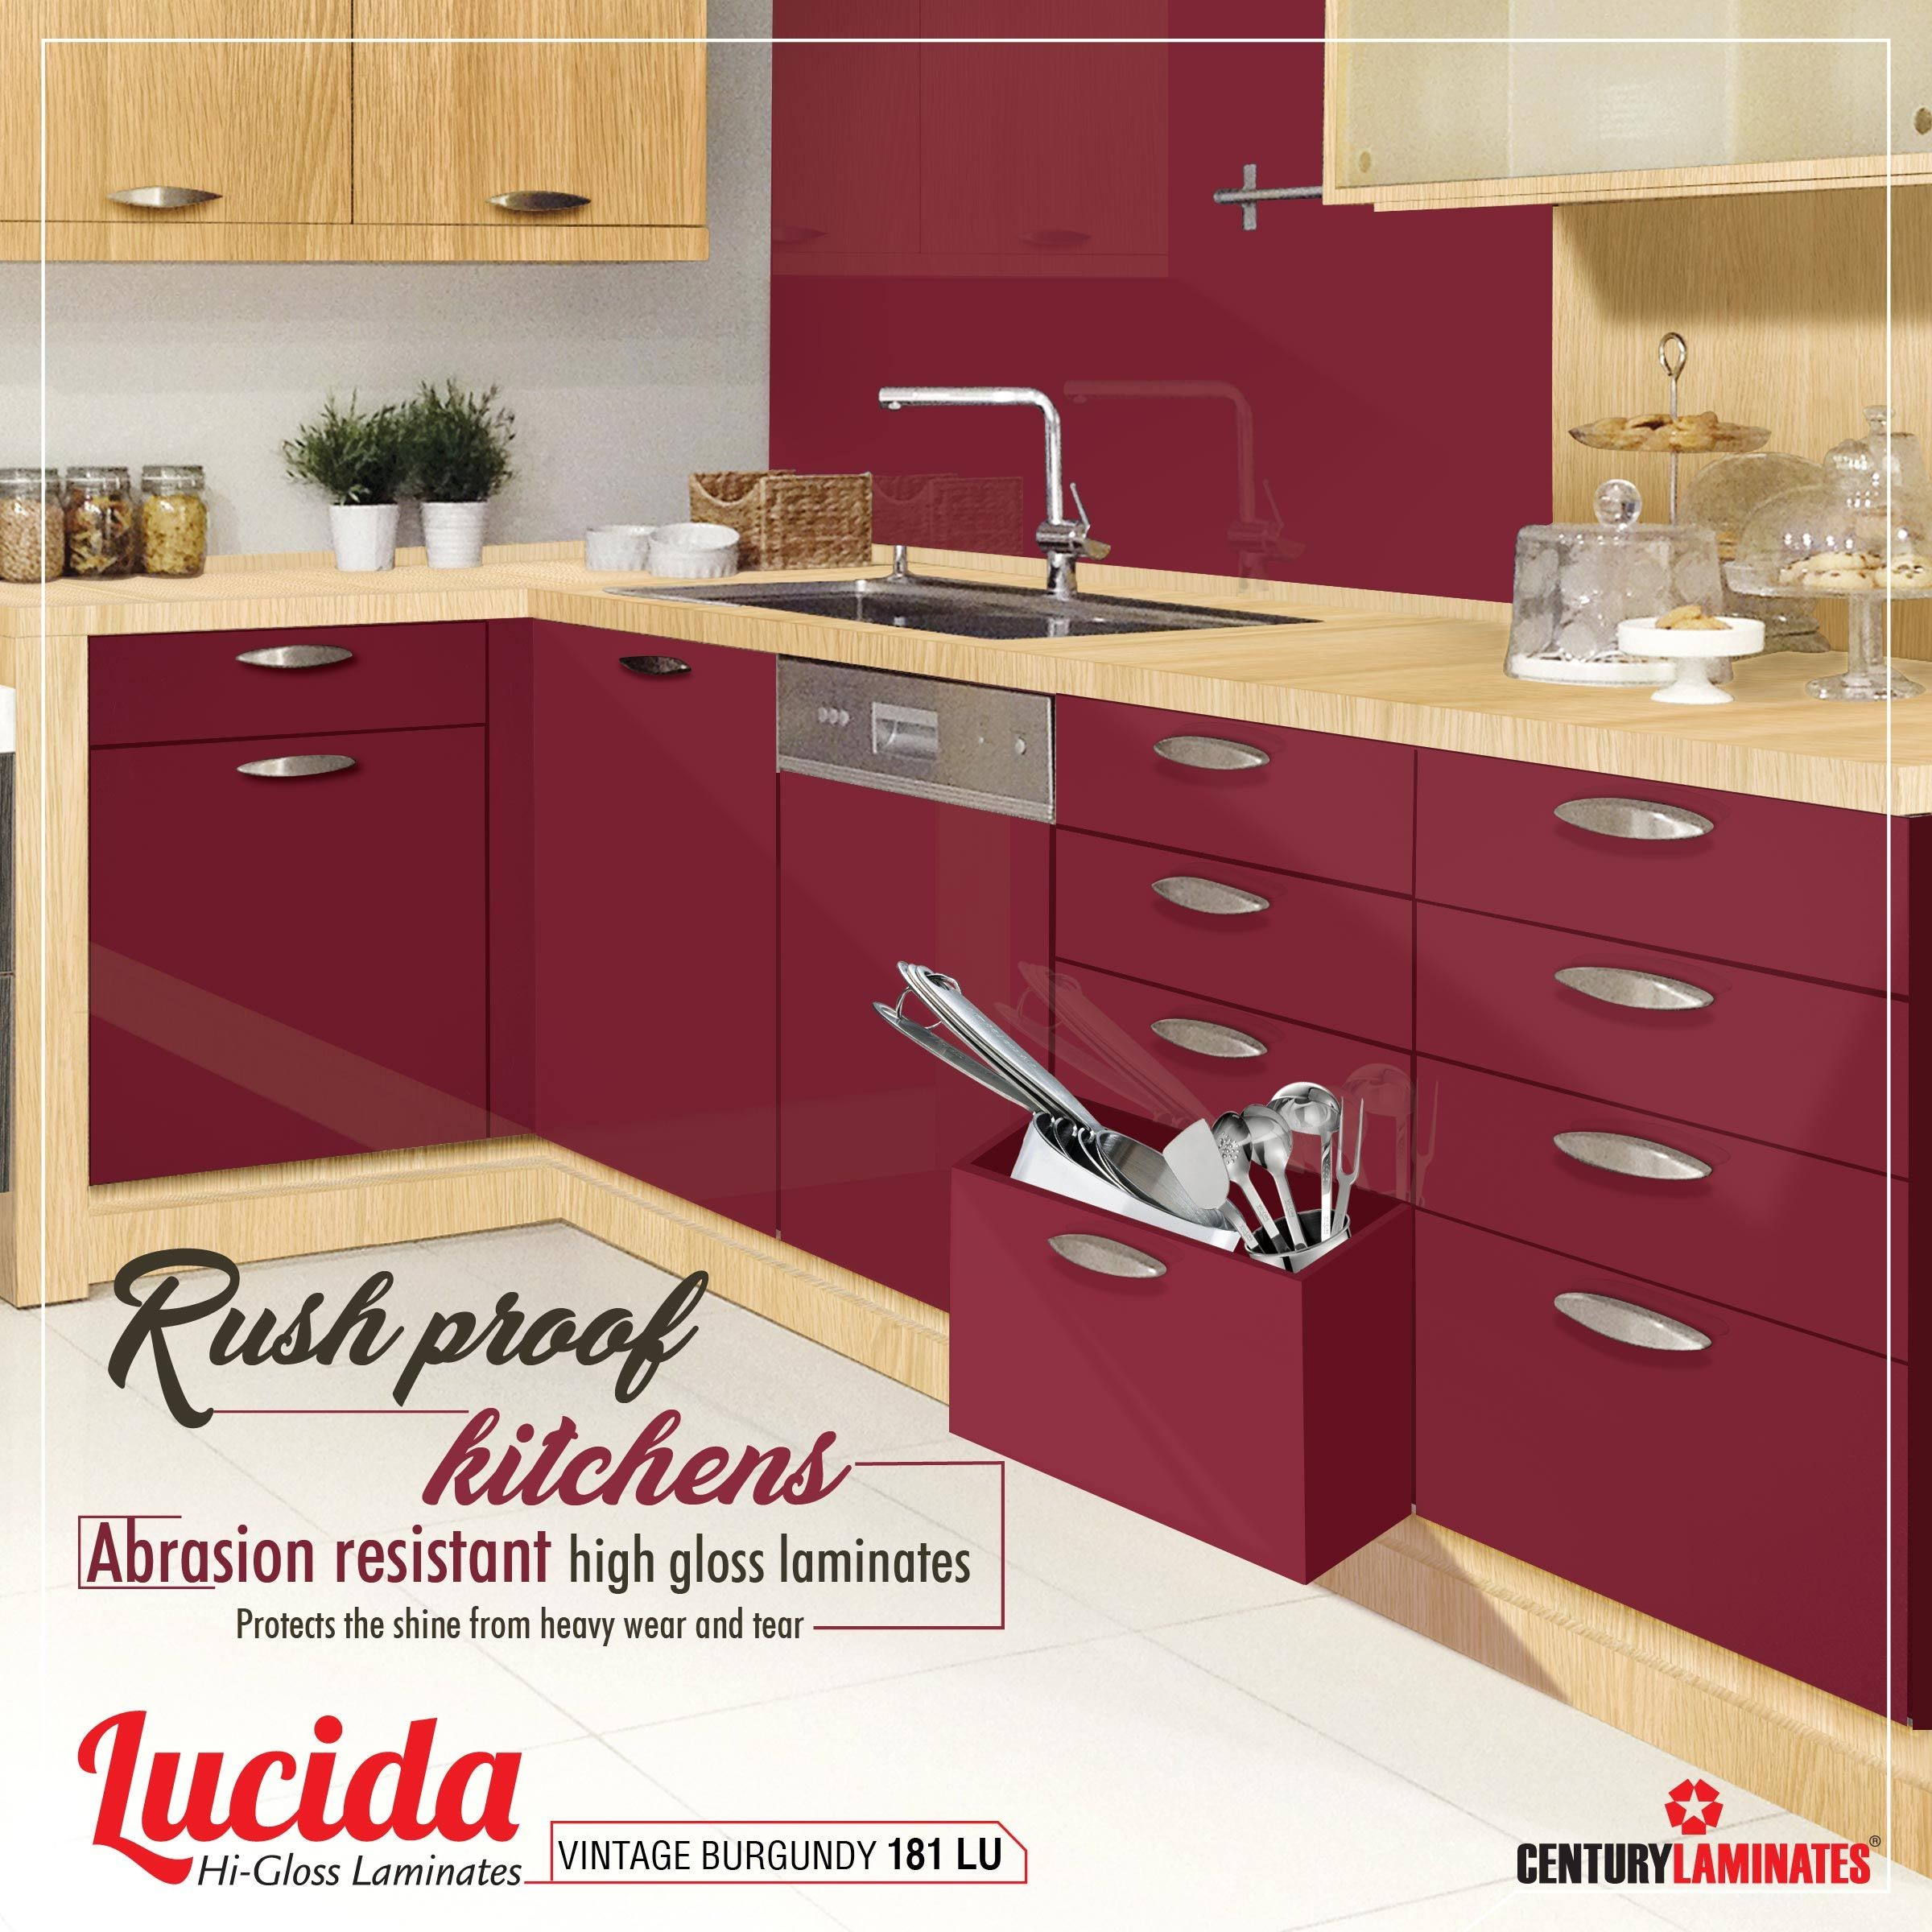 Lucida High gloss laminates is Abrasion resistant & best choice for your kitchens